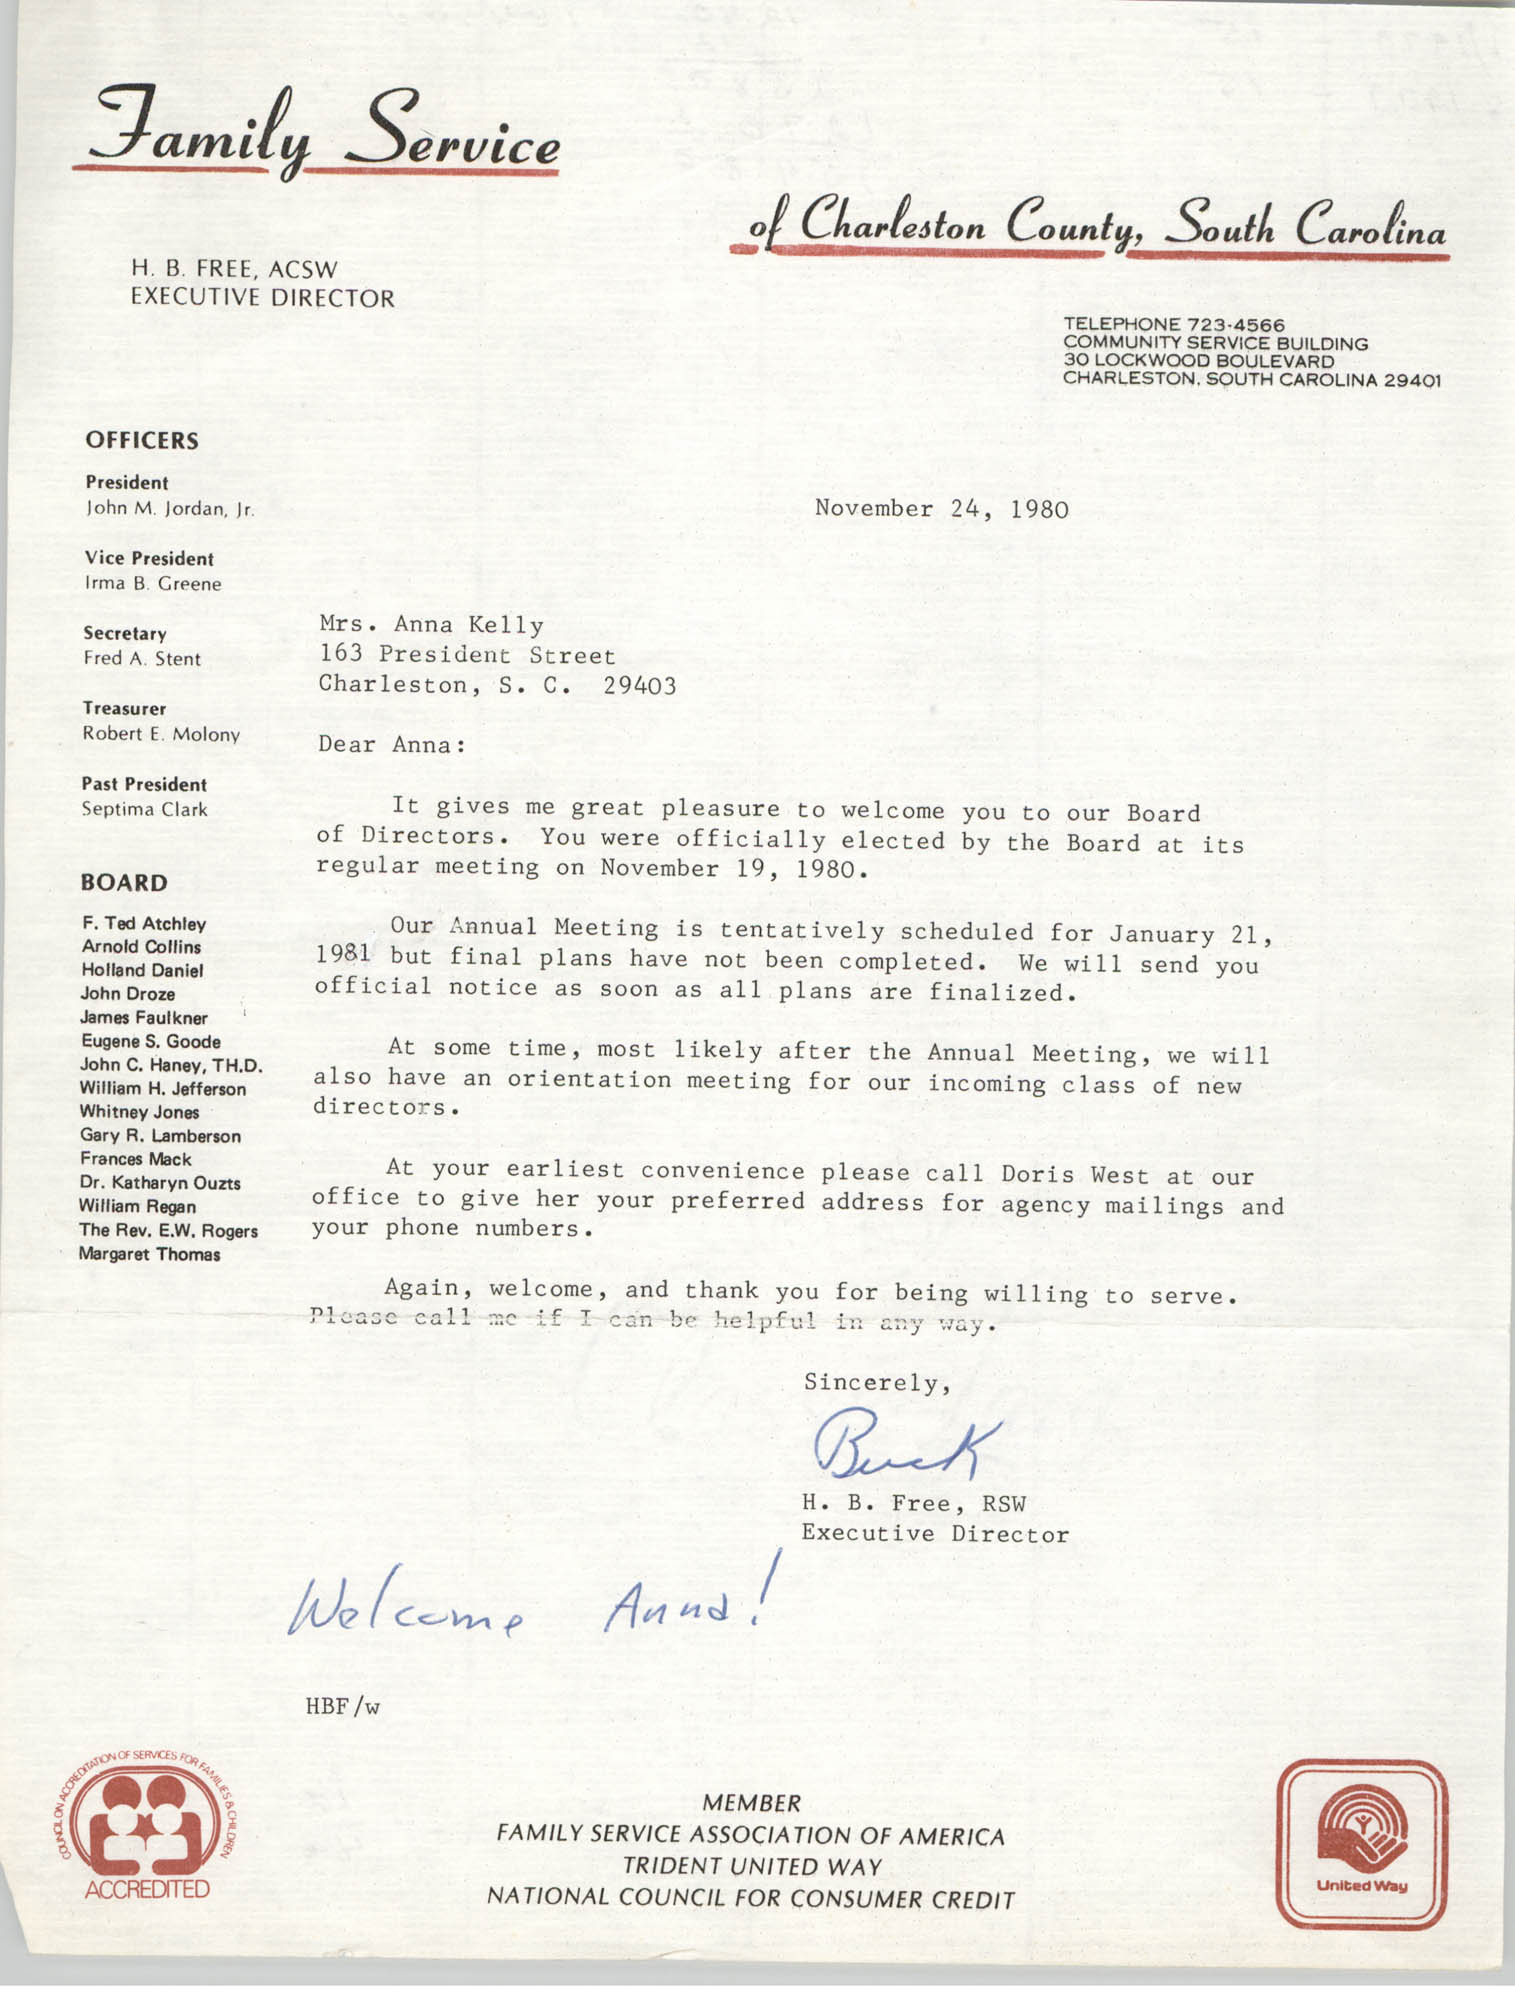 Letter from H. B. Free to Anna D. Kelly, November 24, 1980